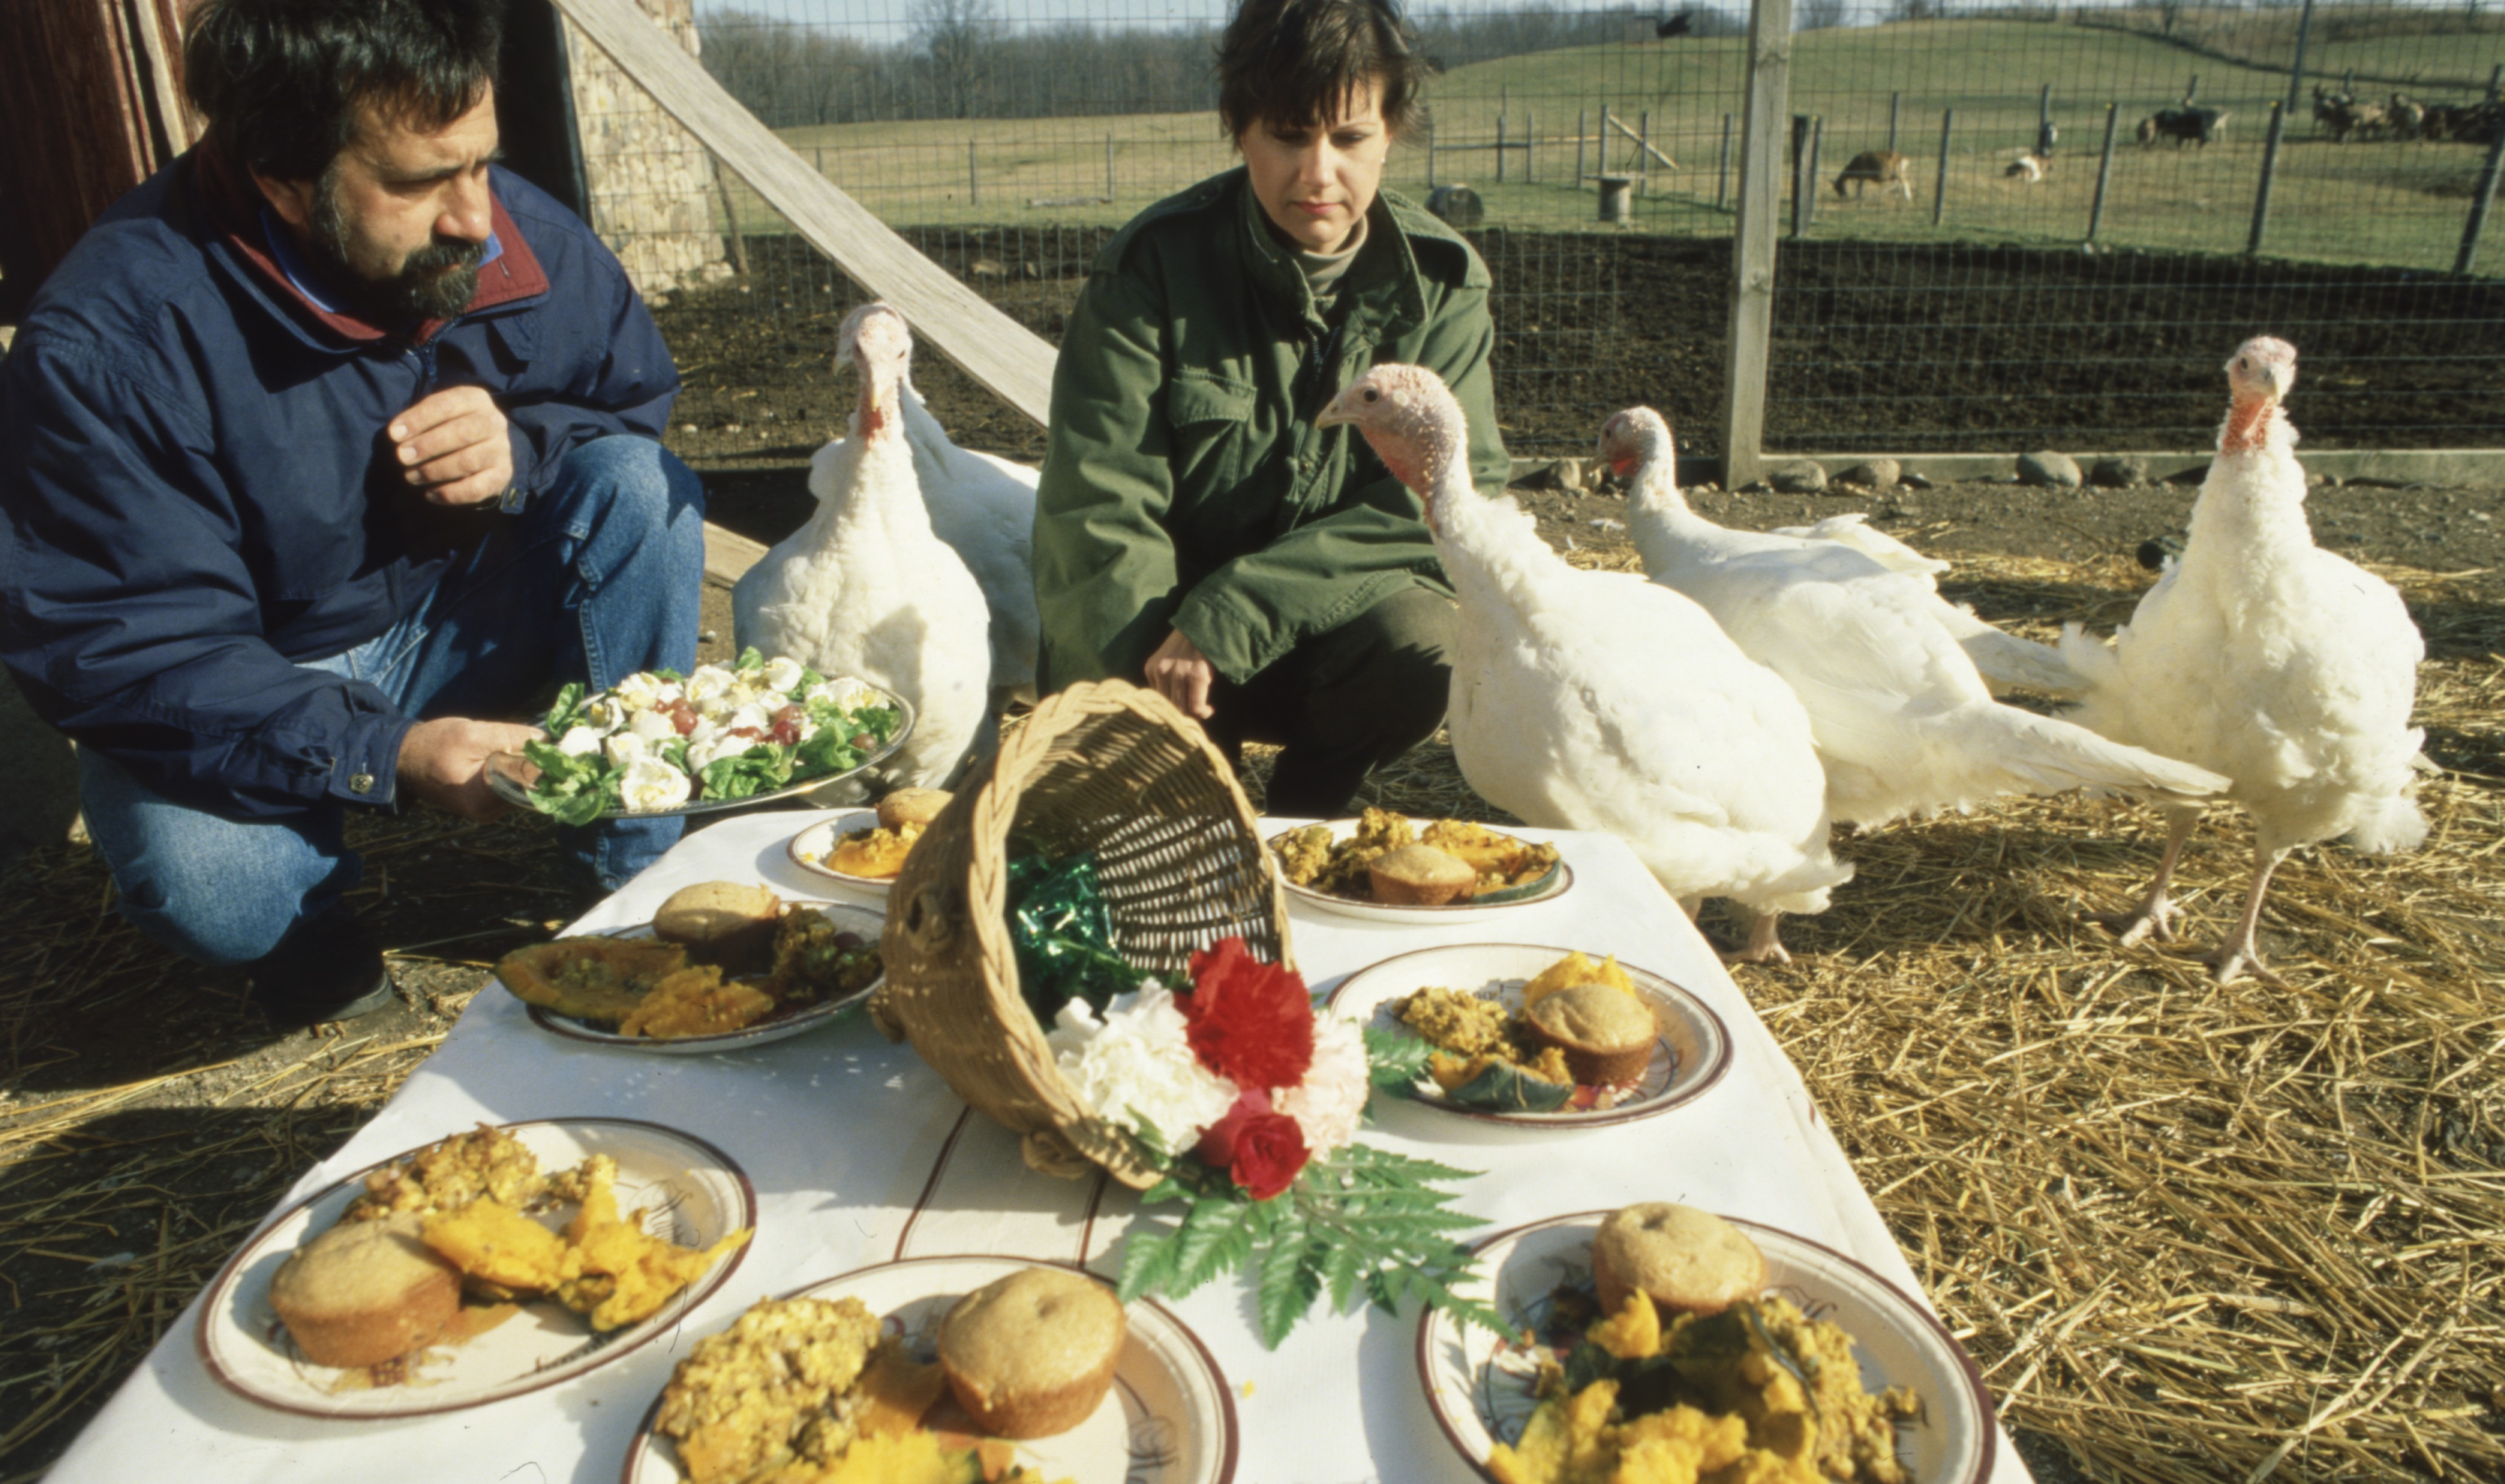 Vegetarian Meal Served To Turkeys, November 1991 image